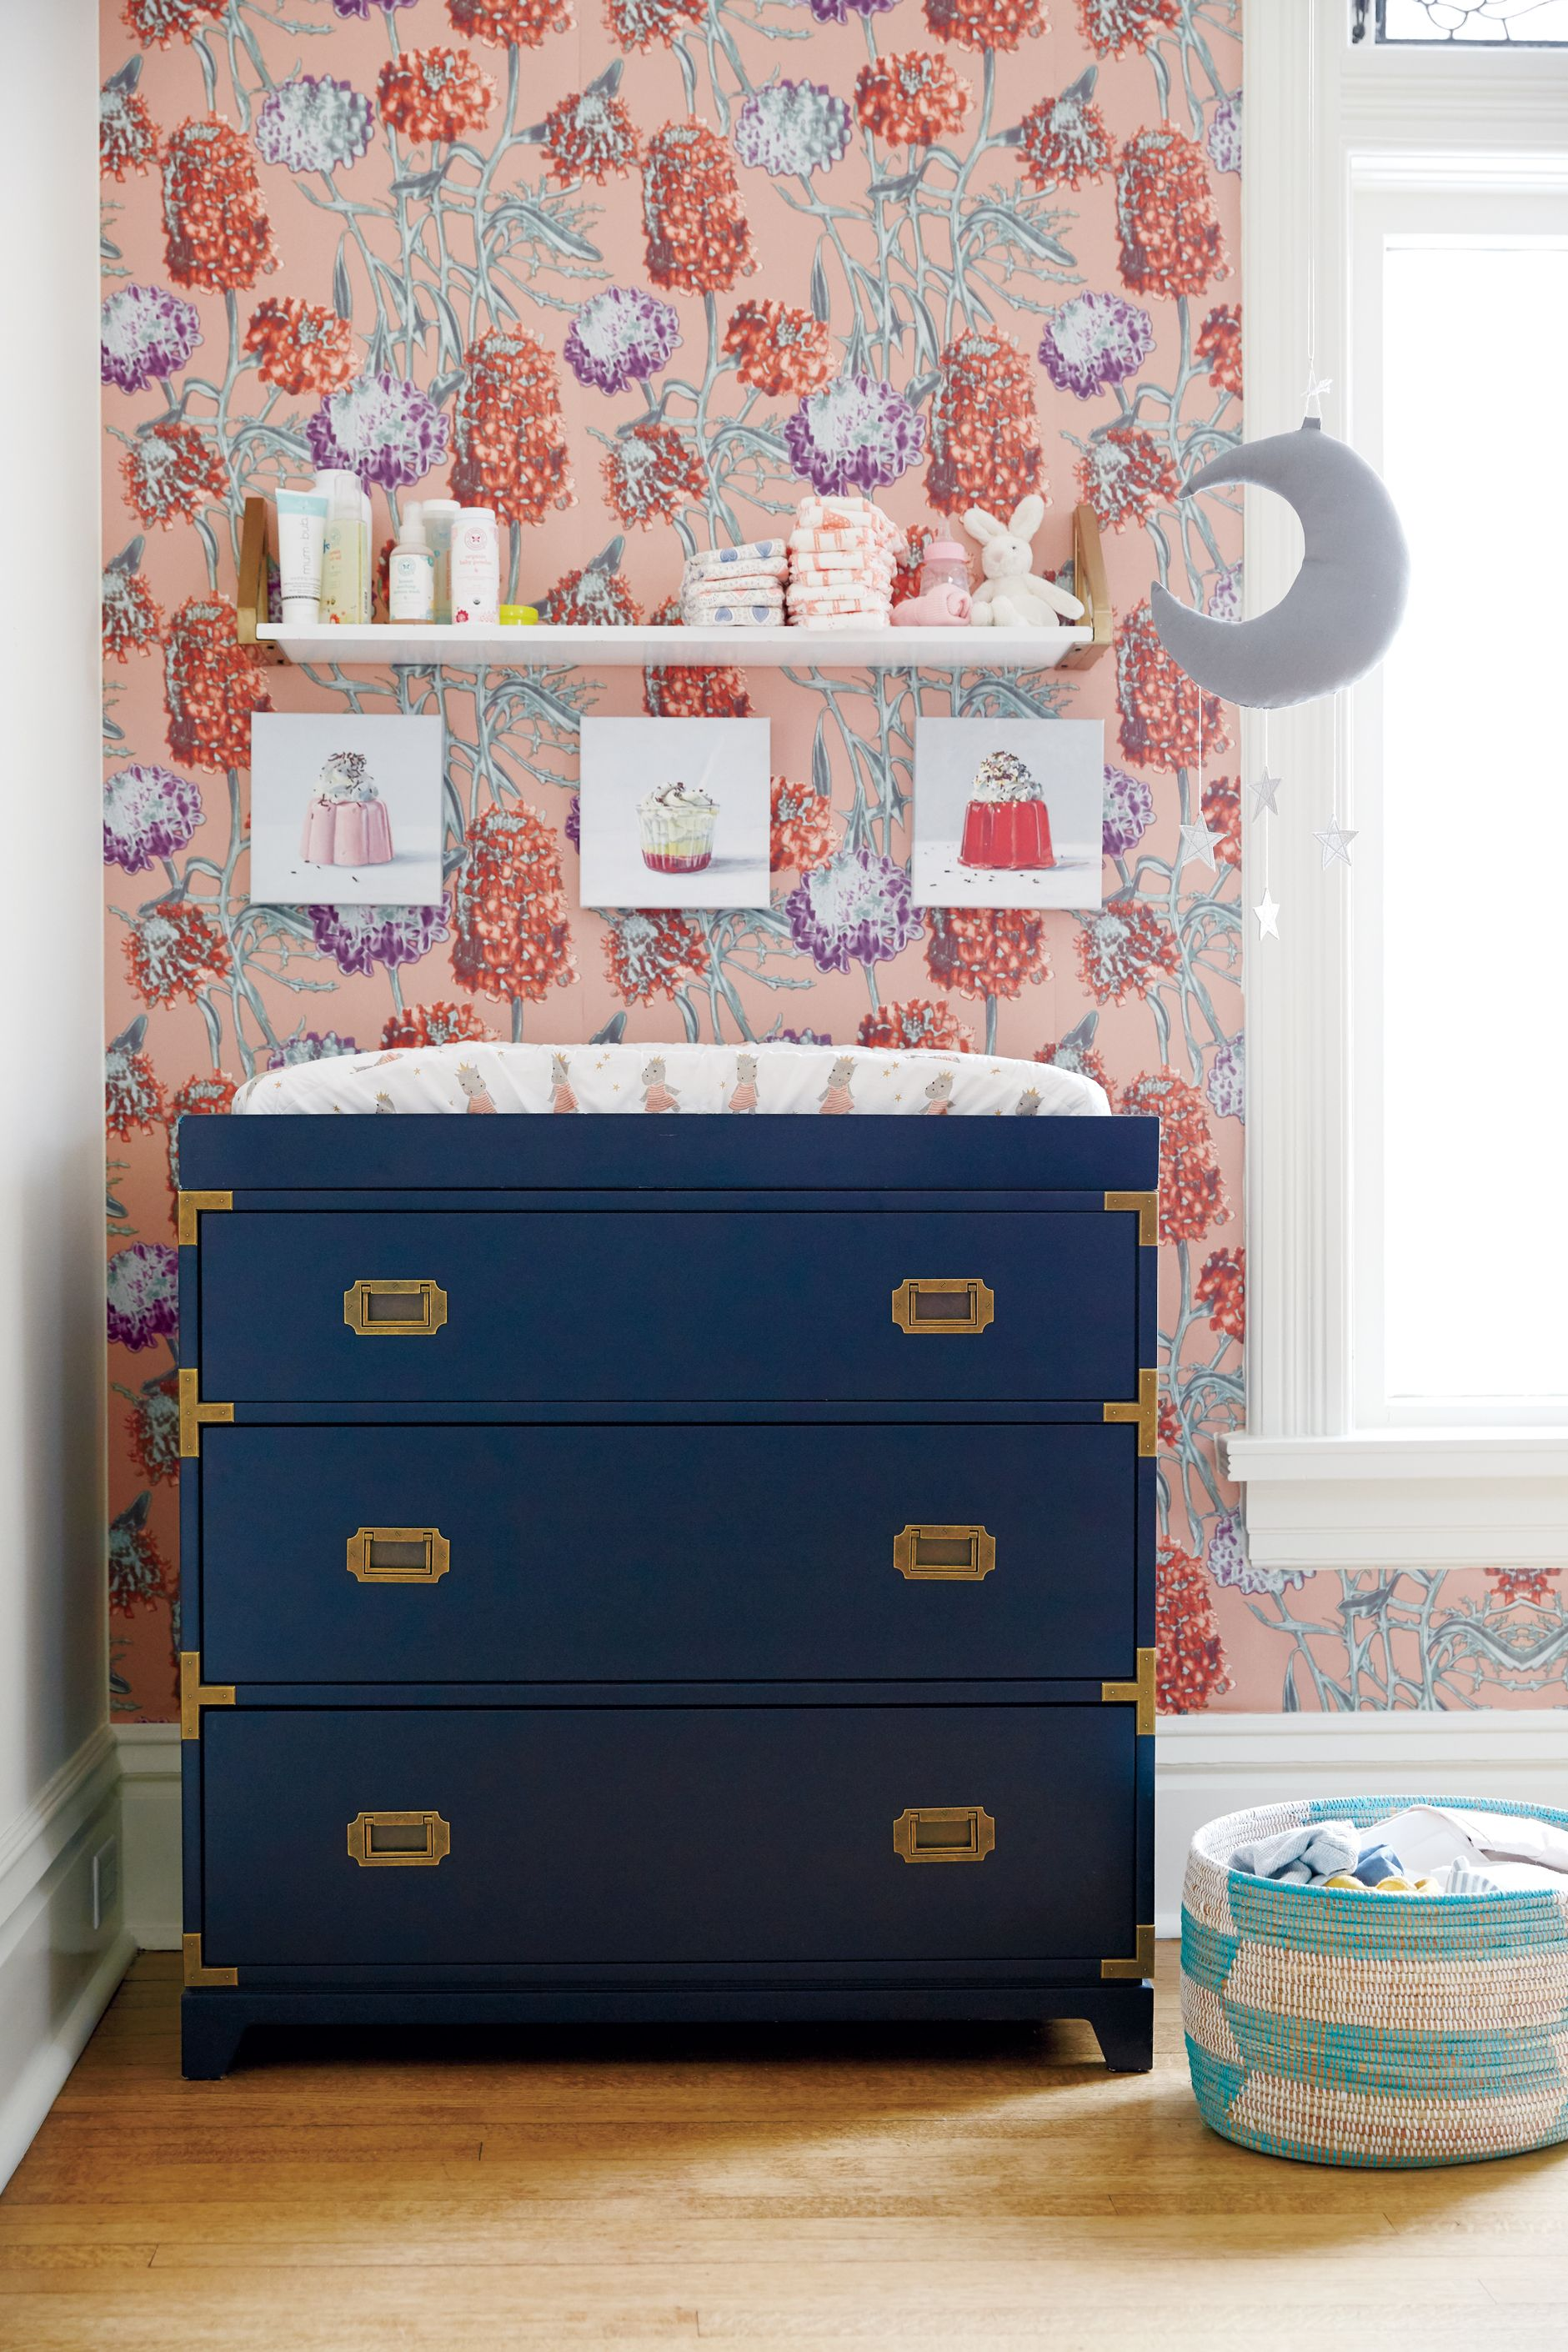 Every Little Thing For Your Little One At The Land Of Nod. Only The Highest